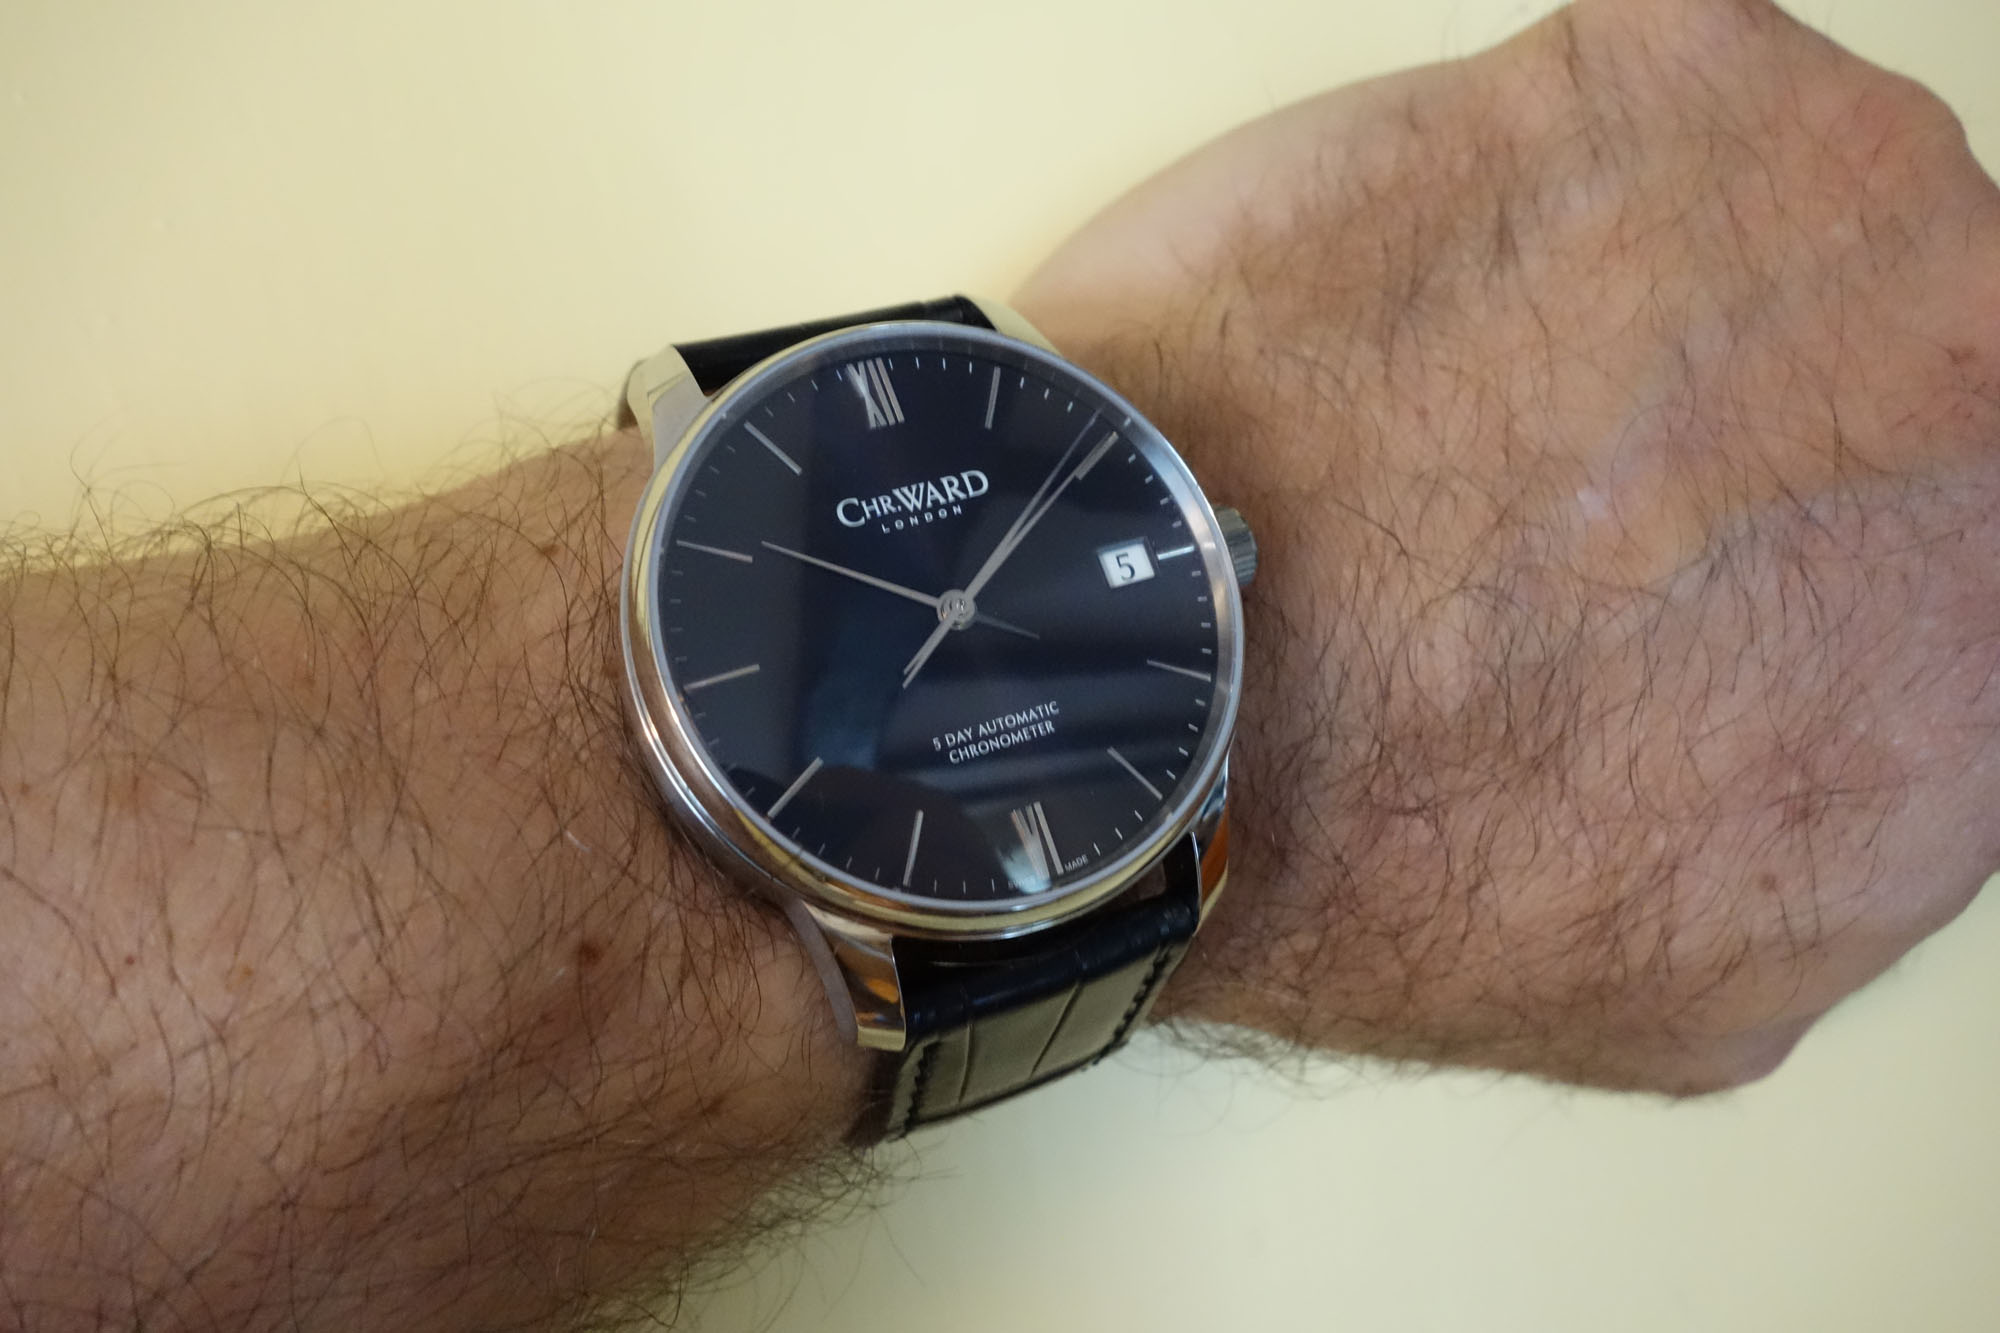 Christopher Ward C9 Harrison 5 Day Automatic - Wristshot